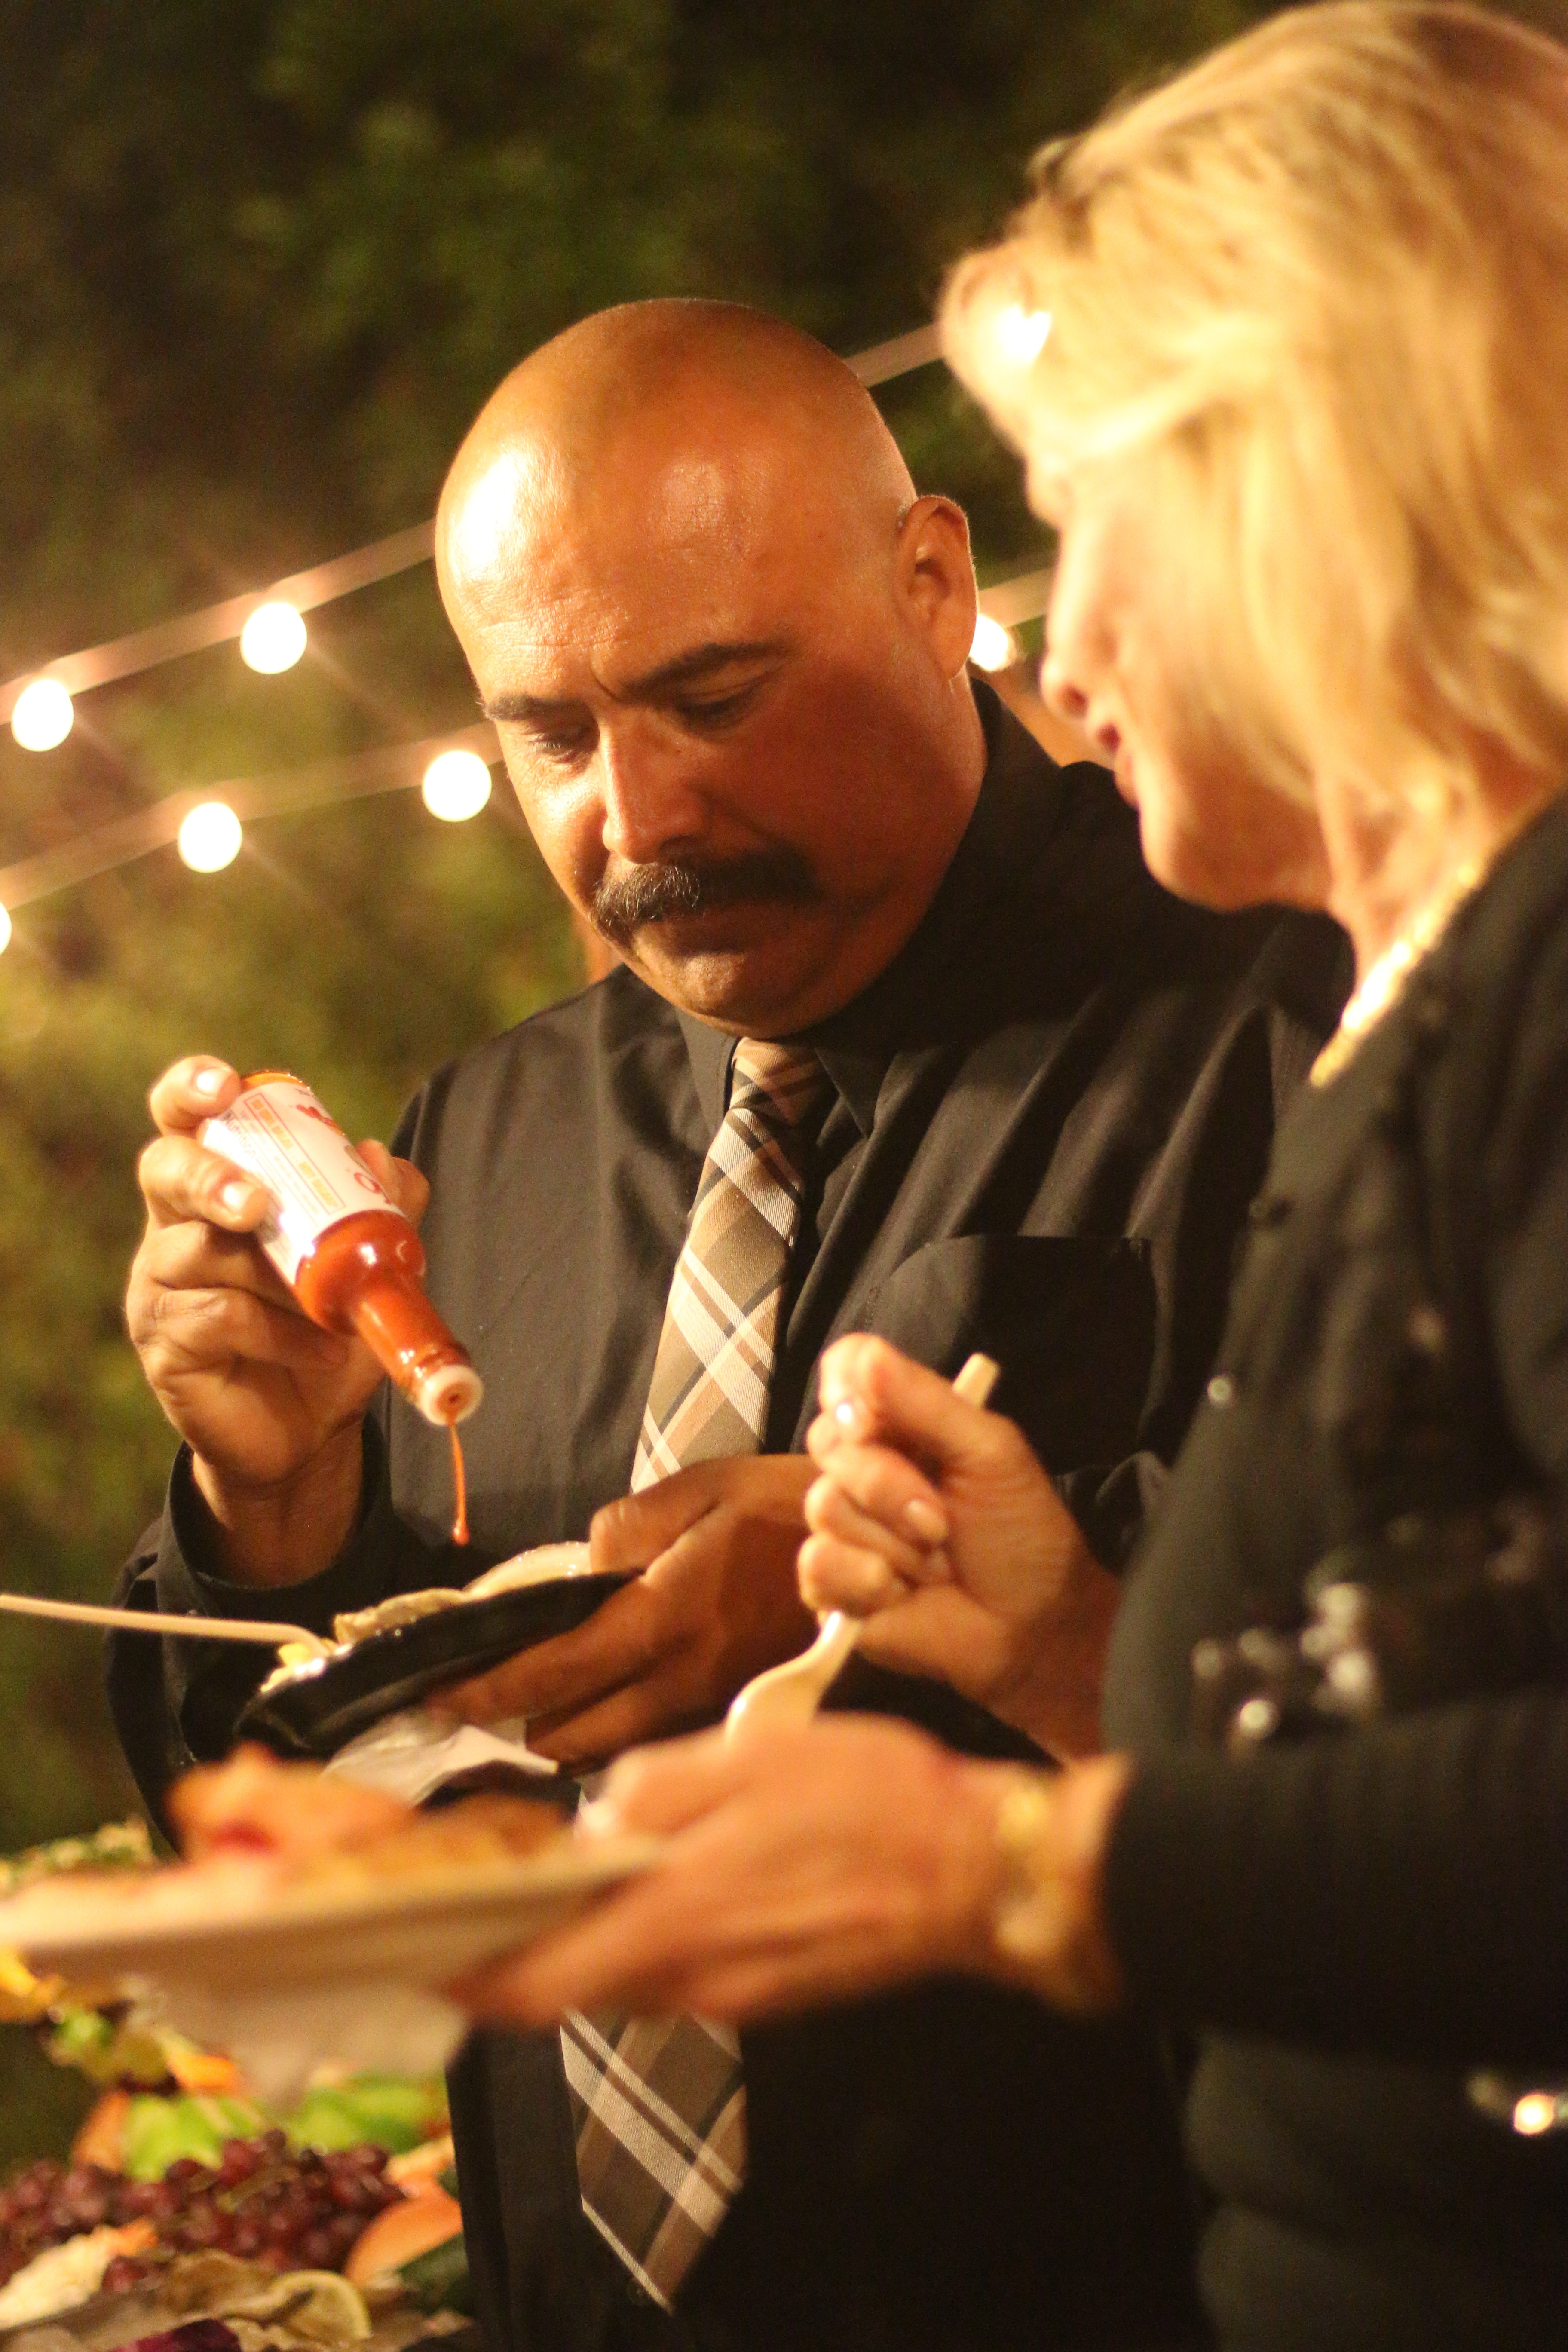 People came to enjoy the local faire of San Clemente's restaurants, wineries and breweries Oct. 30 at Casino San Clemente. Photos by Eric Heinz